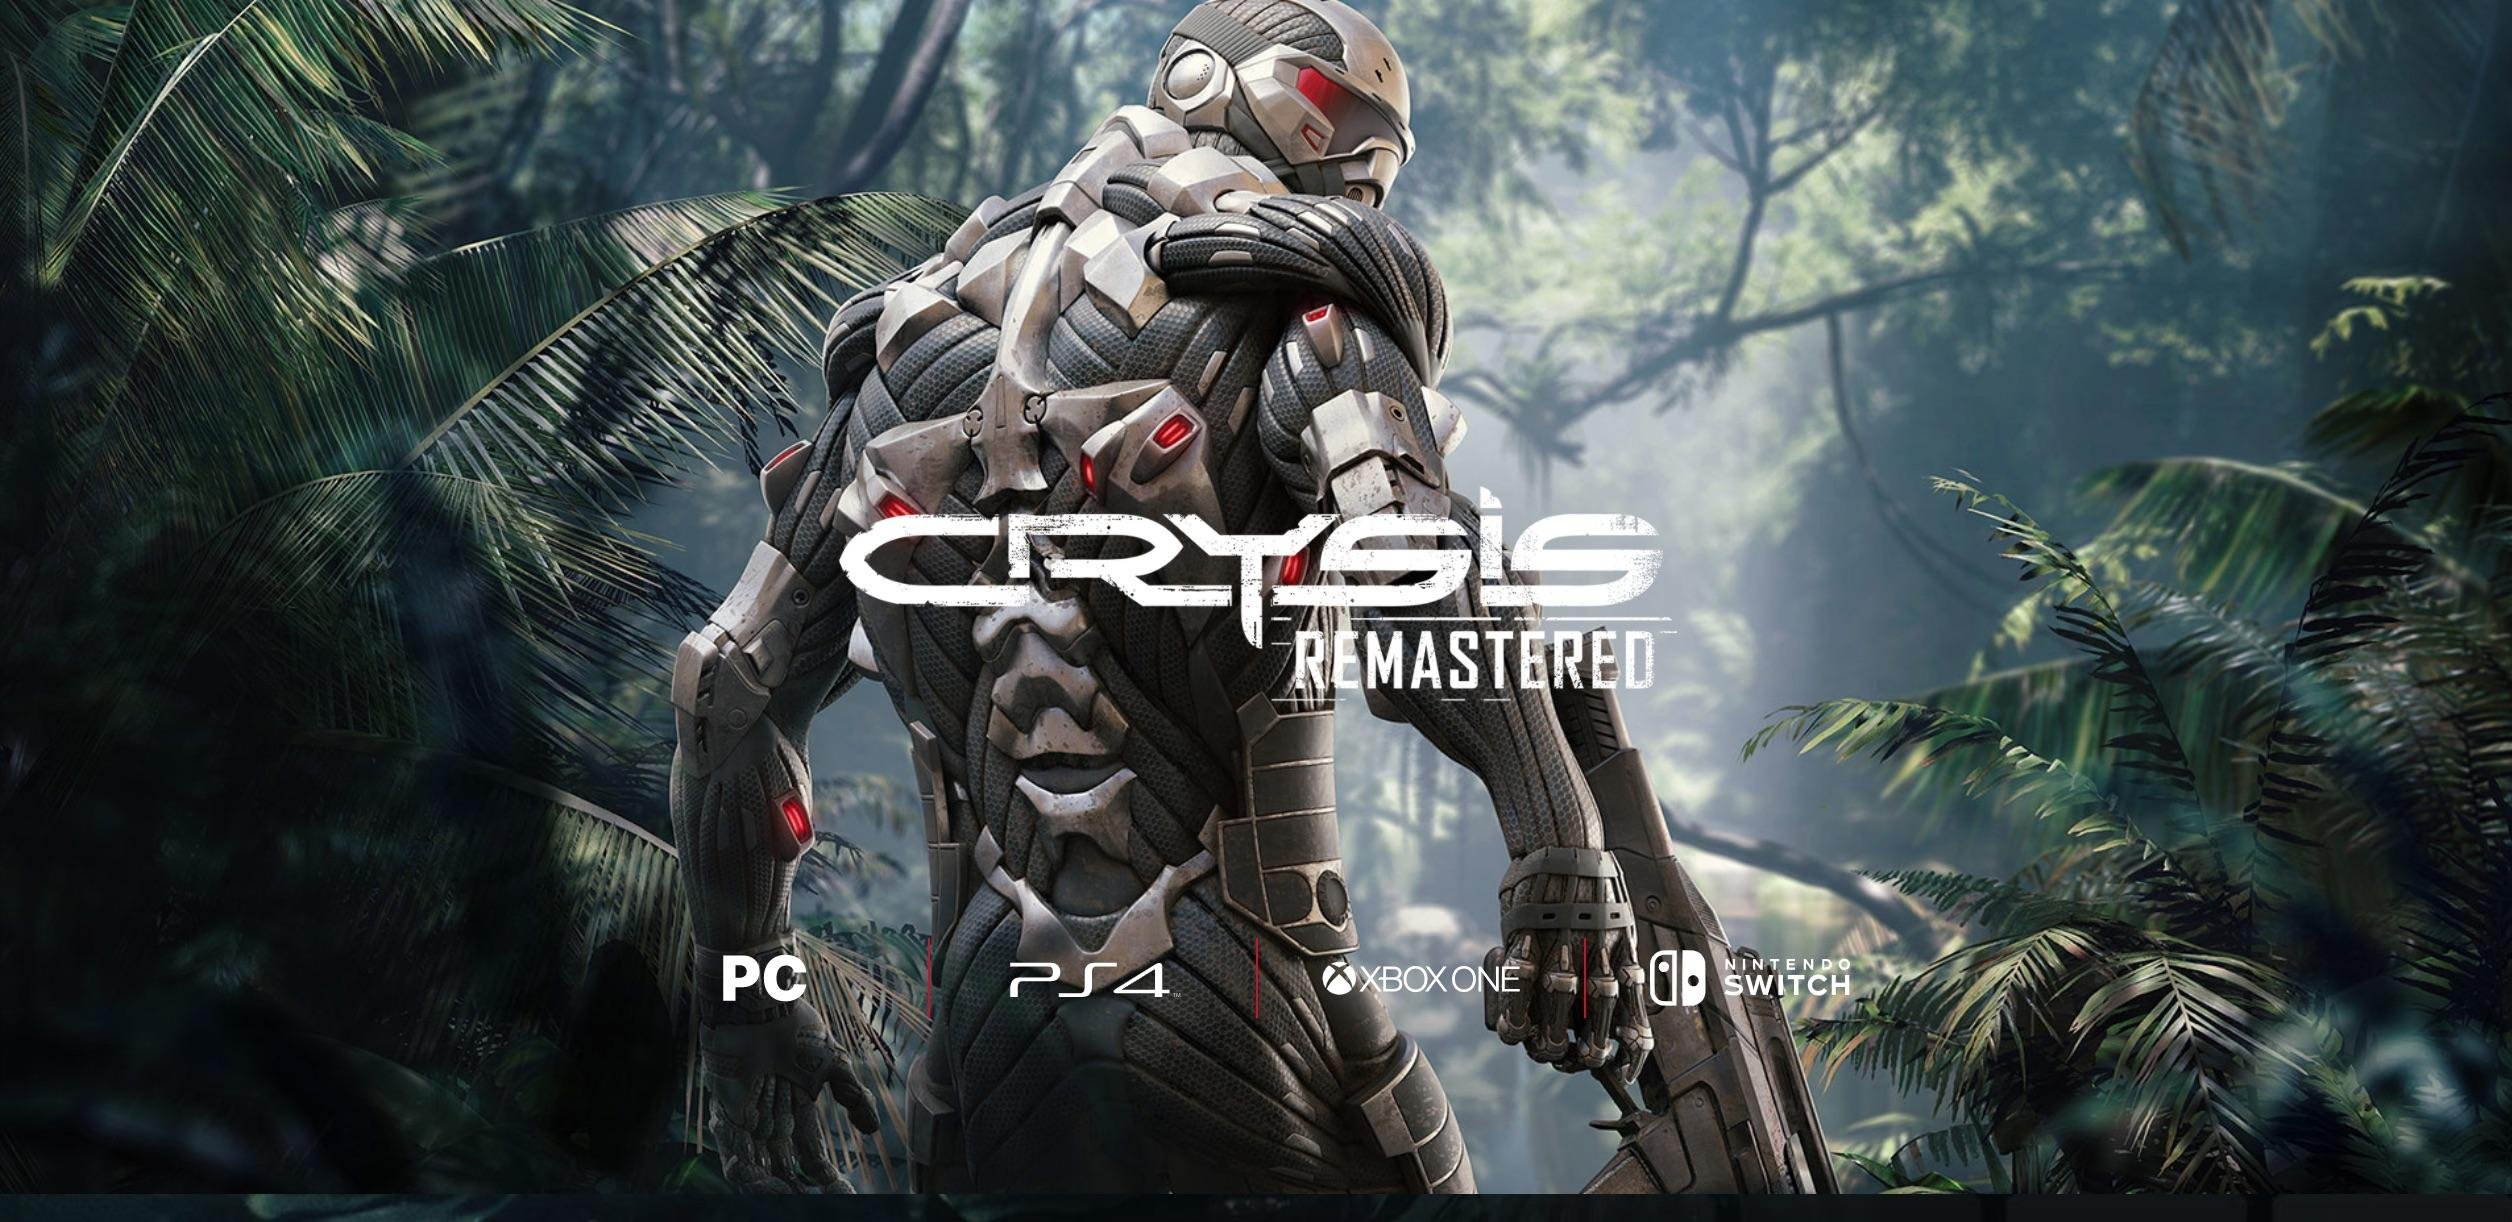 Crysis Remastered, Crytek rethinks it: postponed trailer and game